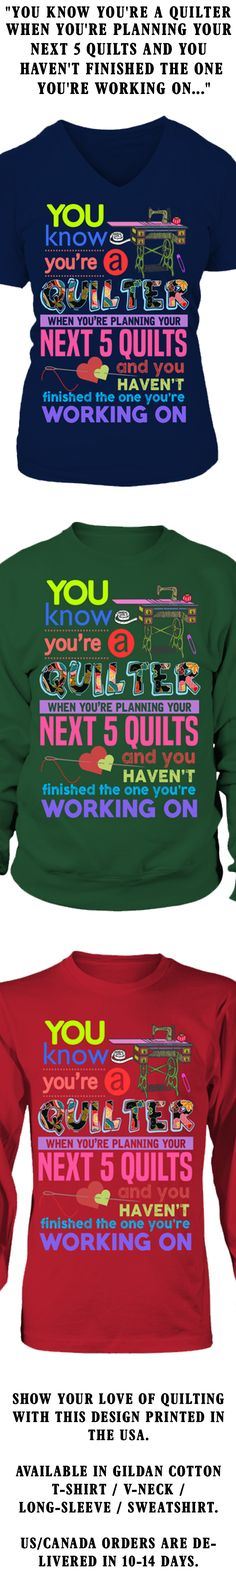 You Know You're A Quilter When You're Planning Your Next 5 Quilts And You Haven't Finished The One You're Working On...  Show your love of Quilting with this design printed in the USA.  Available in Gildan Cotton T-Shirt / V-Neck / Long-Sleeve / Sweatshirt.   US/Canada orders are delivered in 10-14 days.